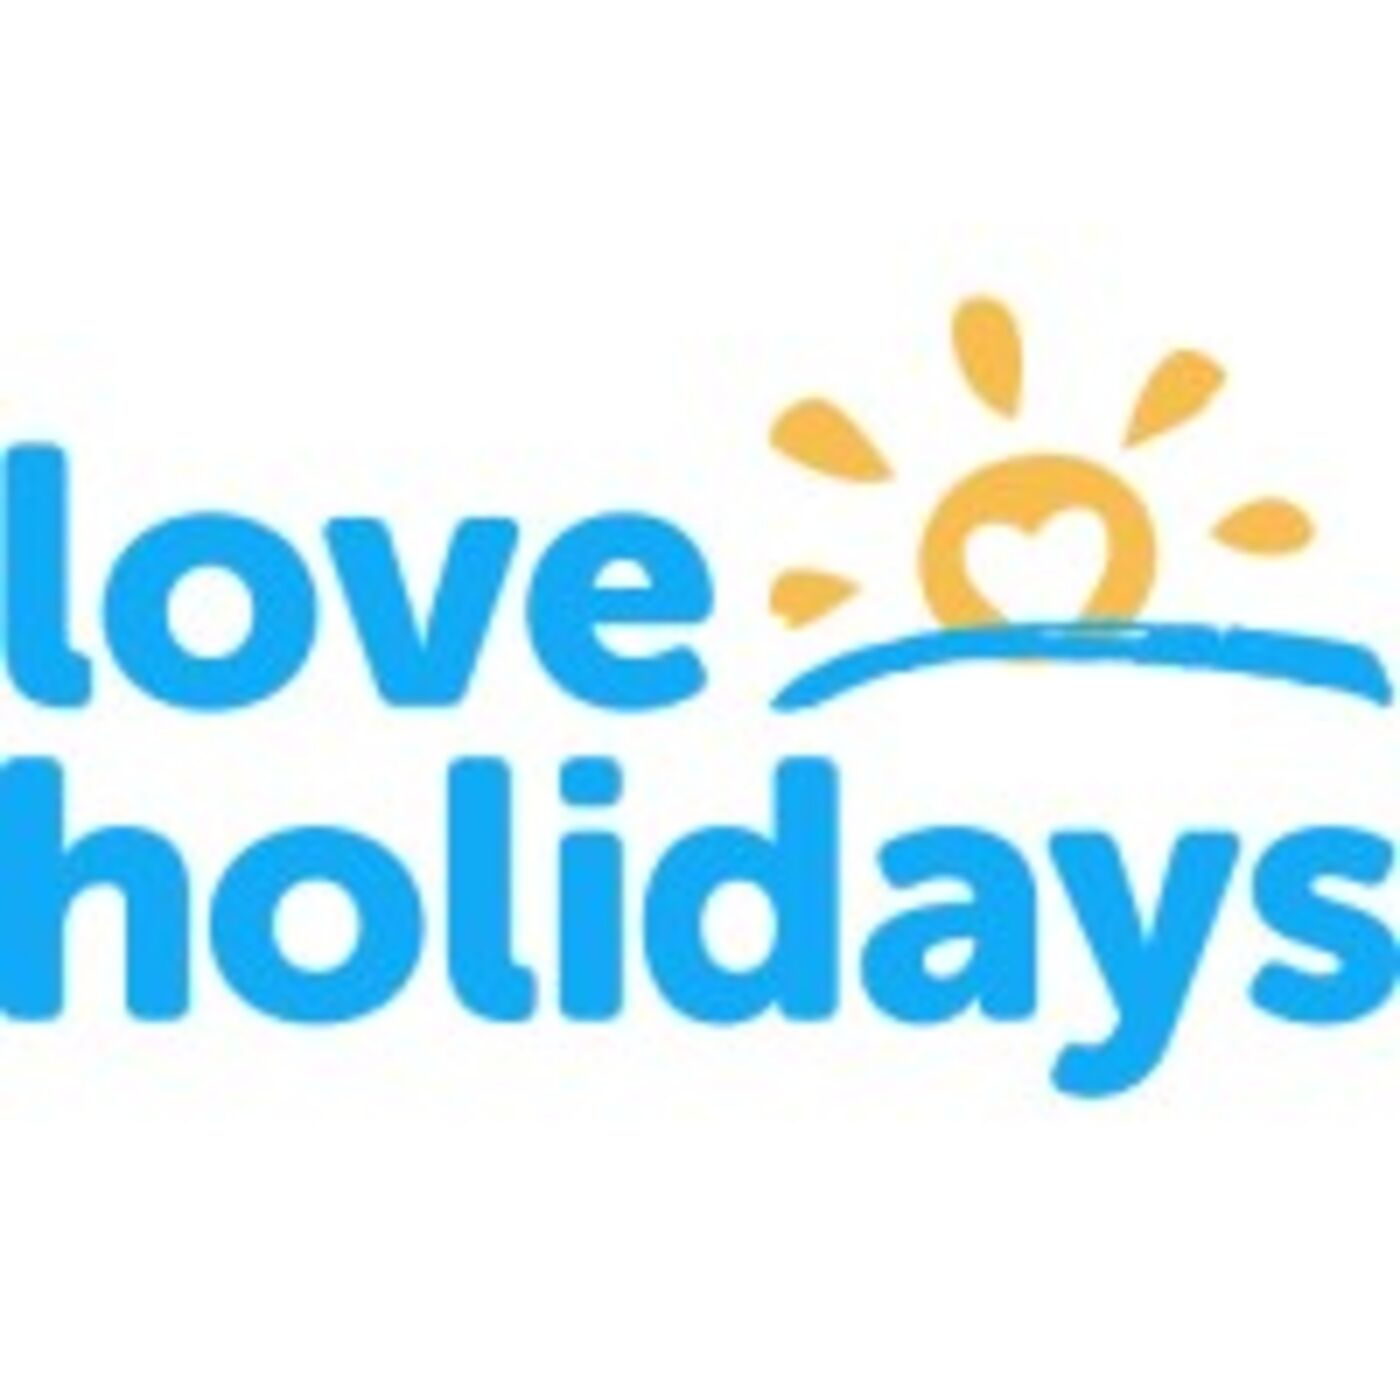 Moving 100k contacts to Twilio with Loveholidays | Enginears Podcast